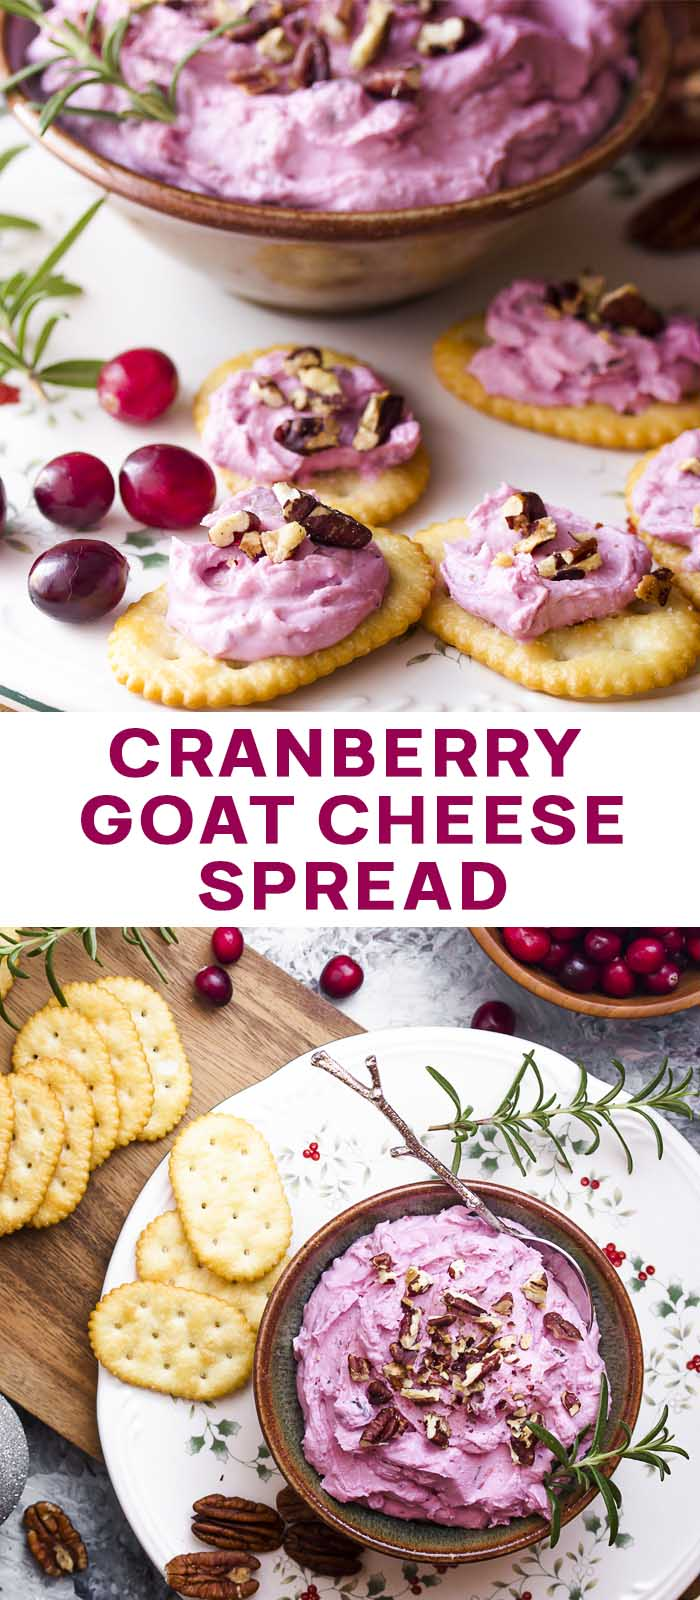 Recipe in a bowl and on crackers with text overlay - Cranberry Goat Cheese Spread.